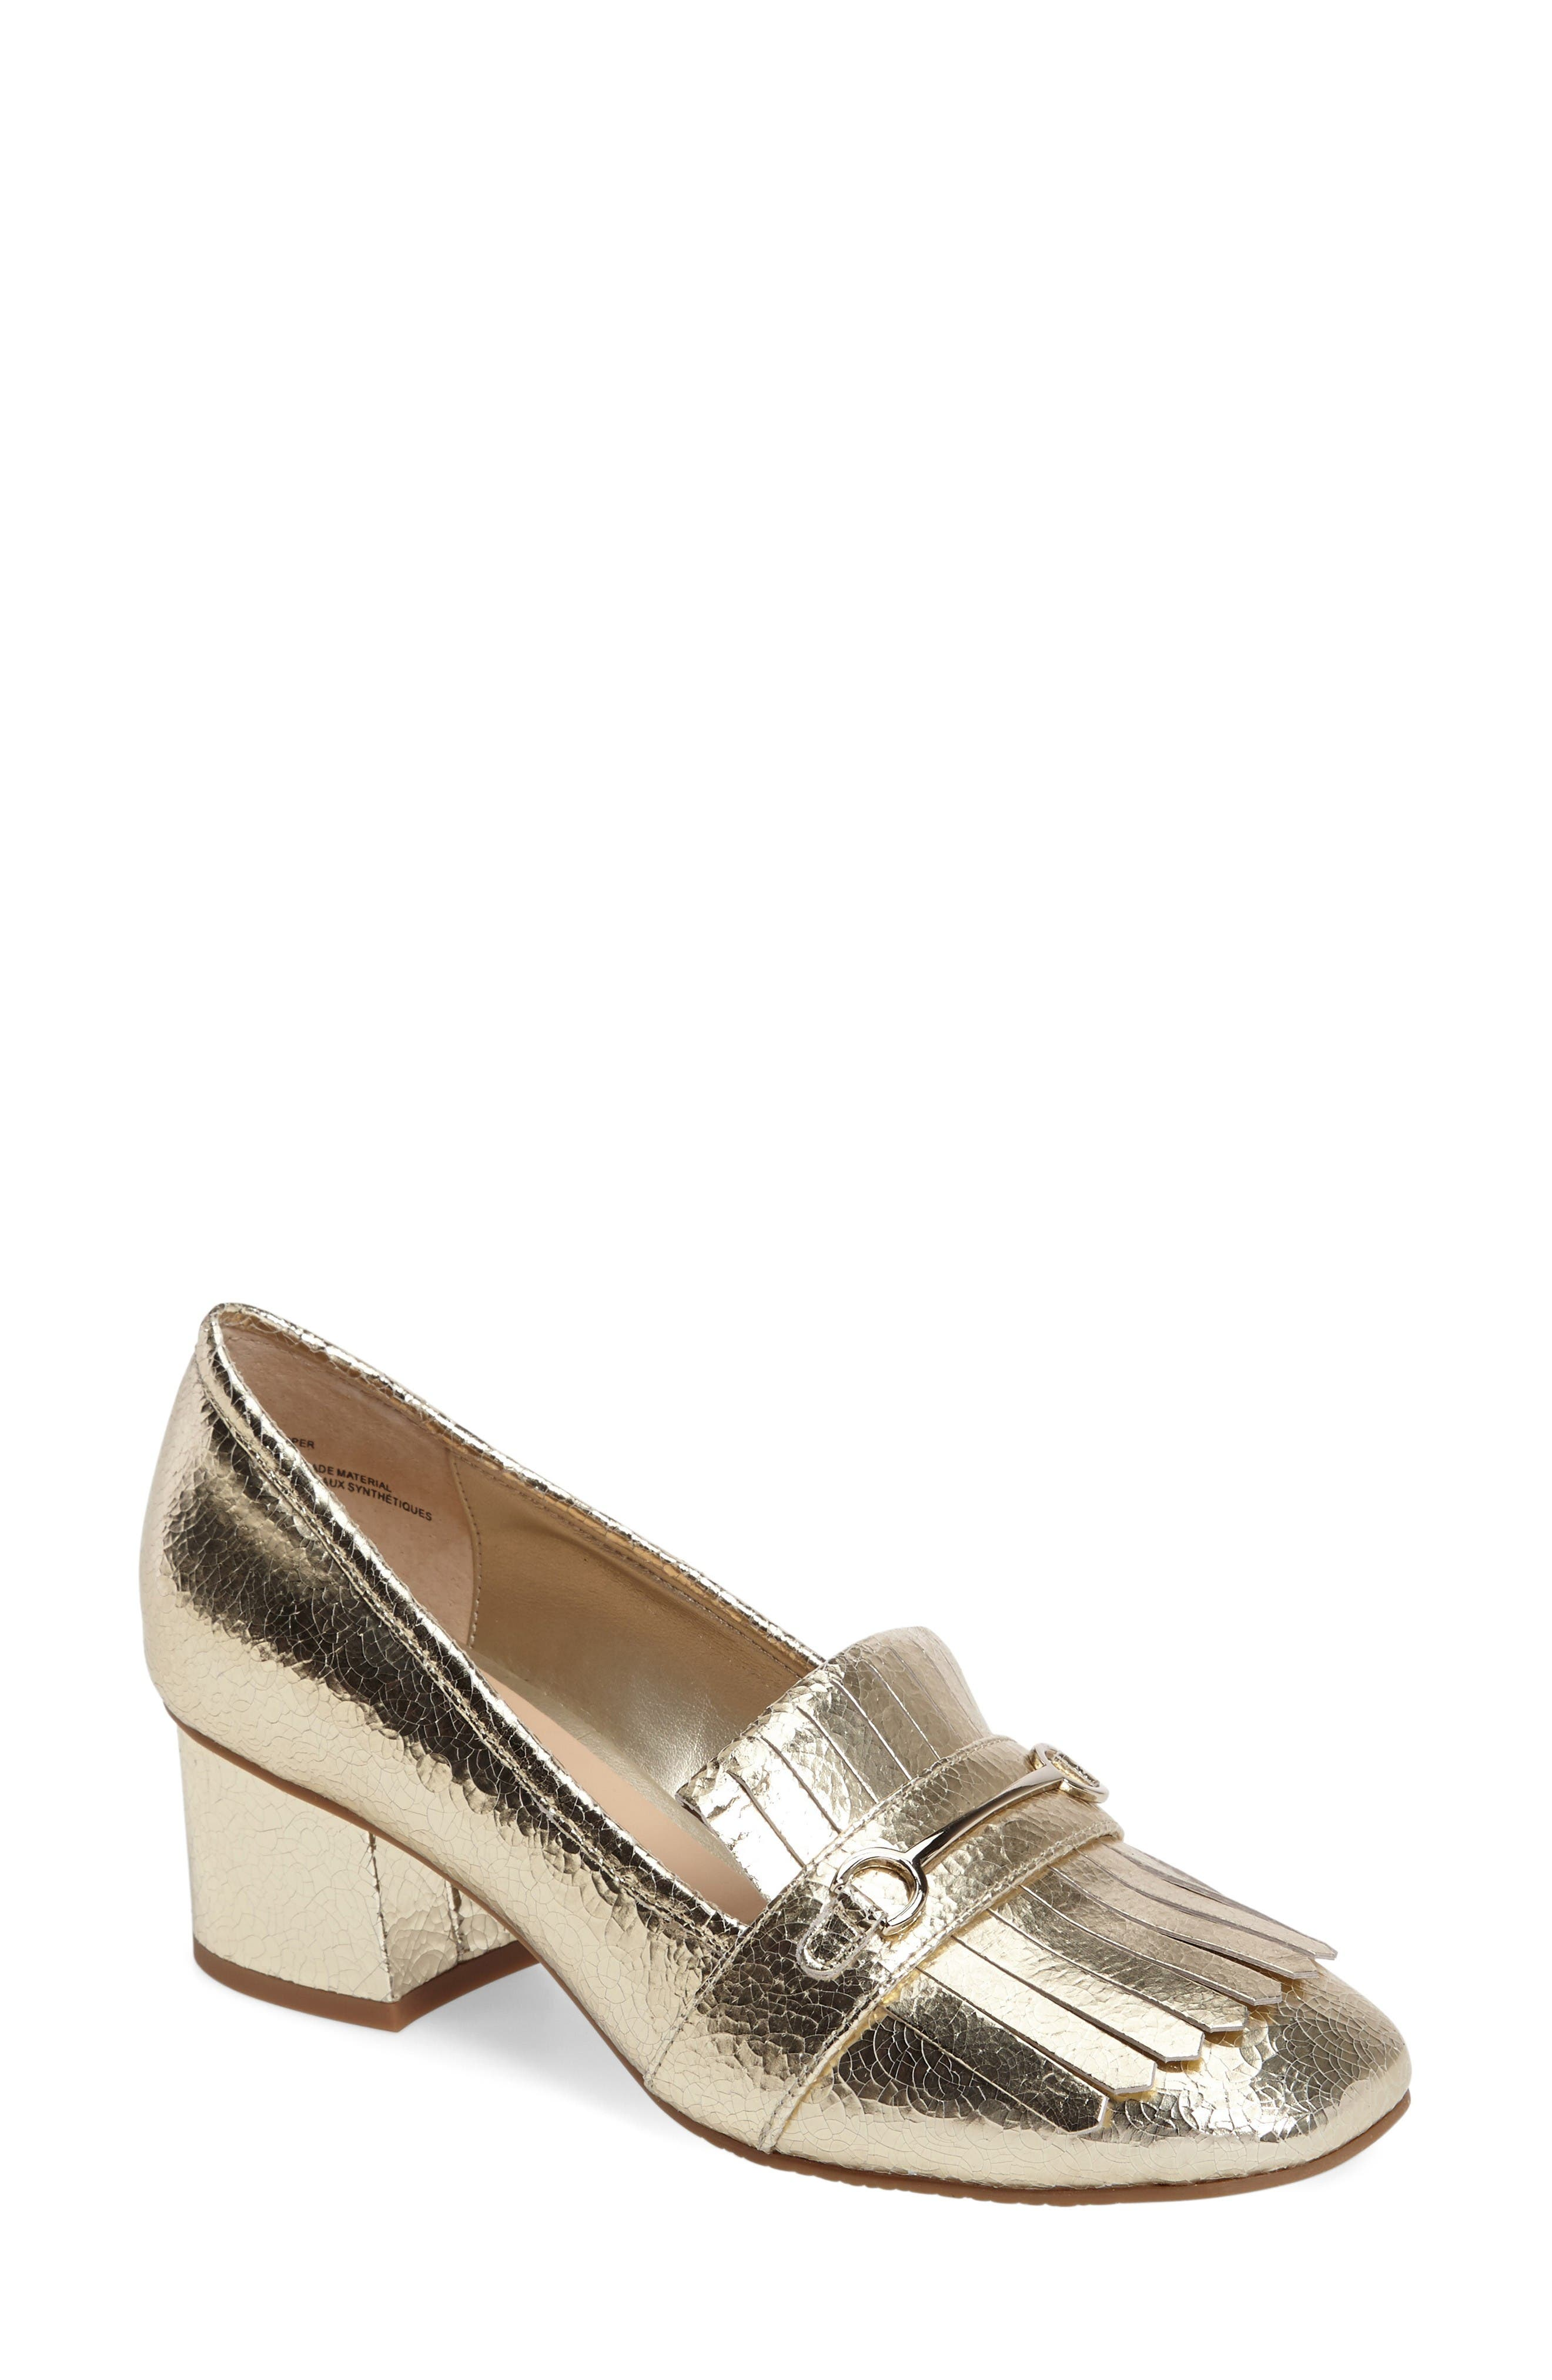 Alternate Image 1 Selected - BP. Molley Loafer Pump (Women)